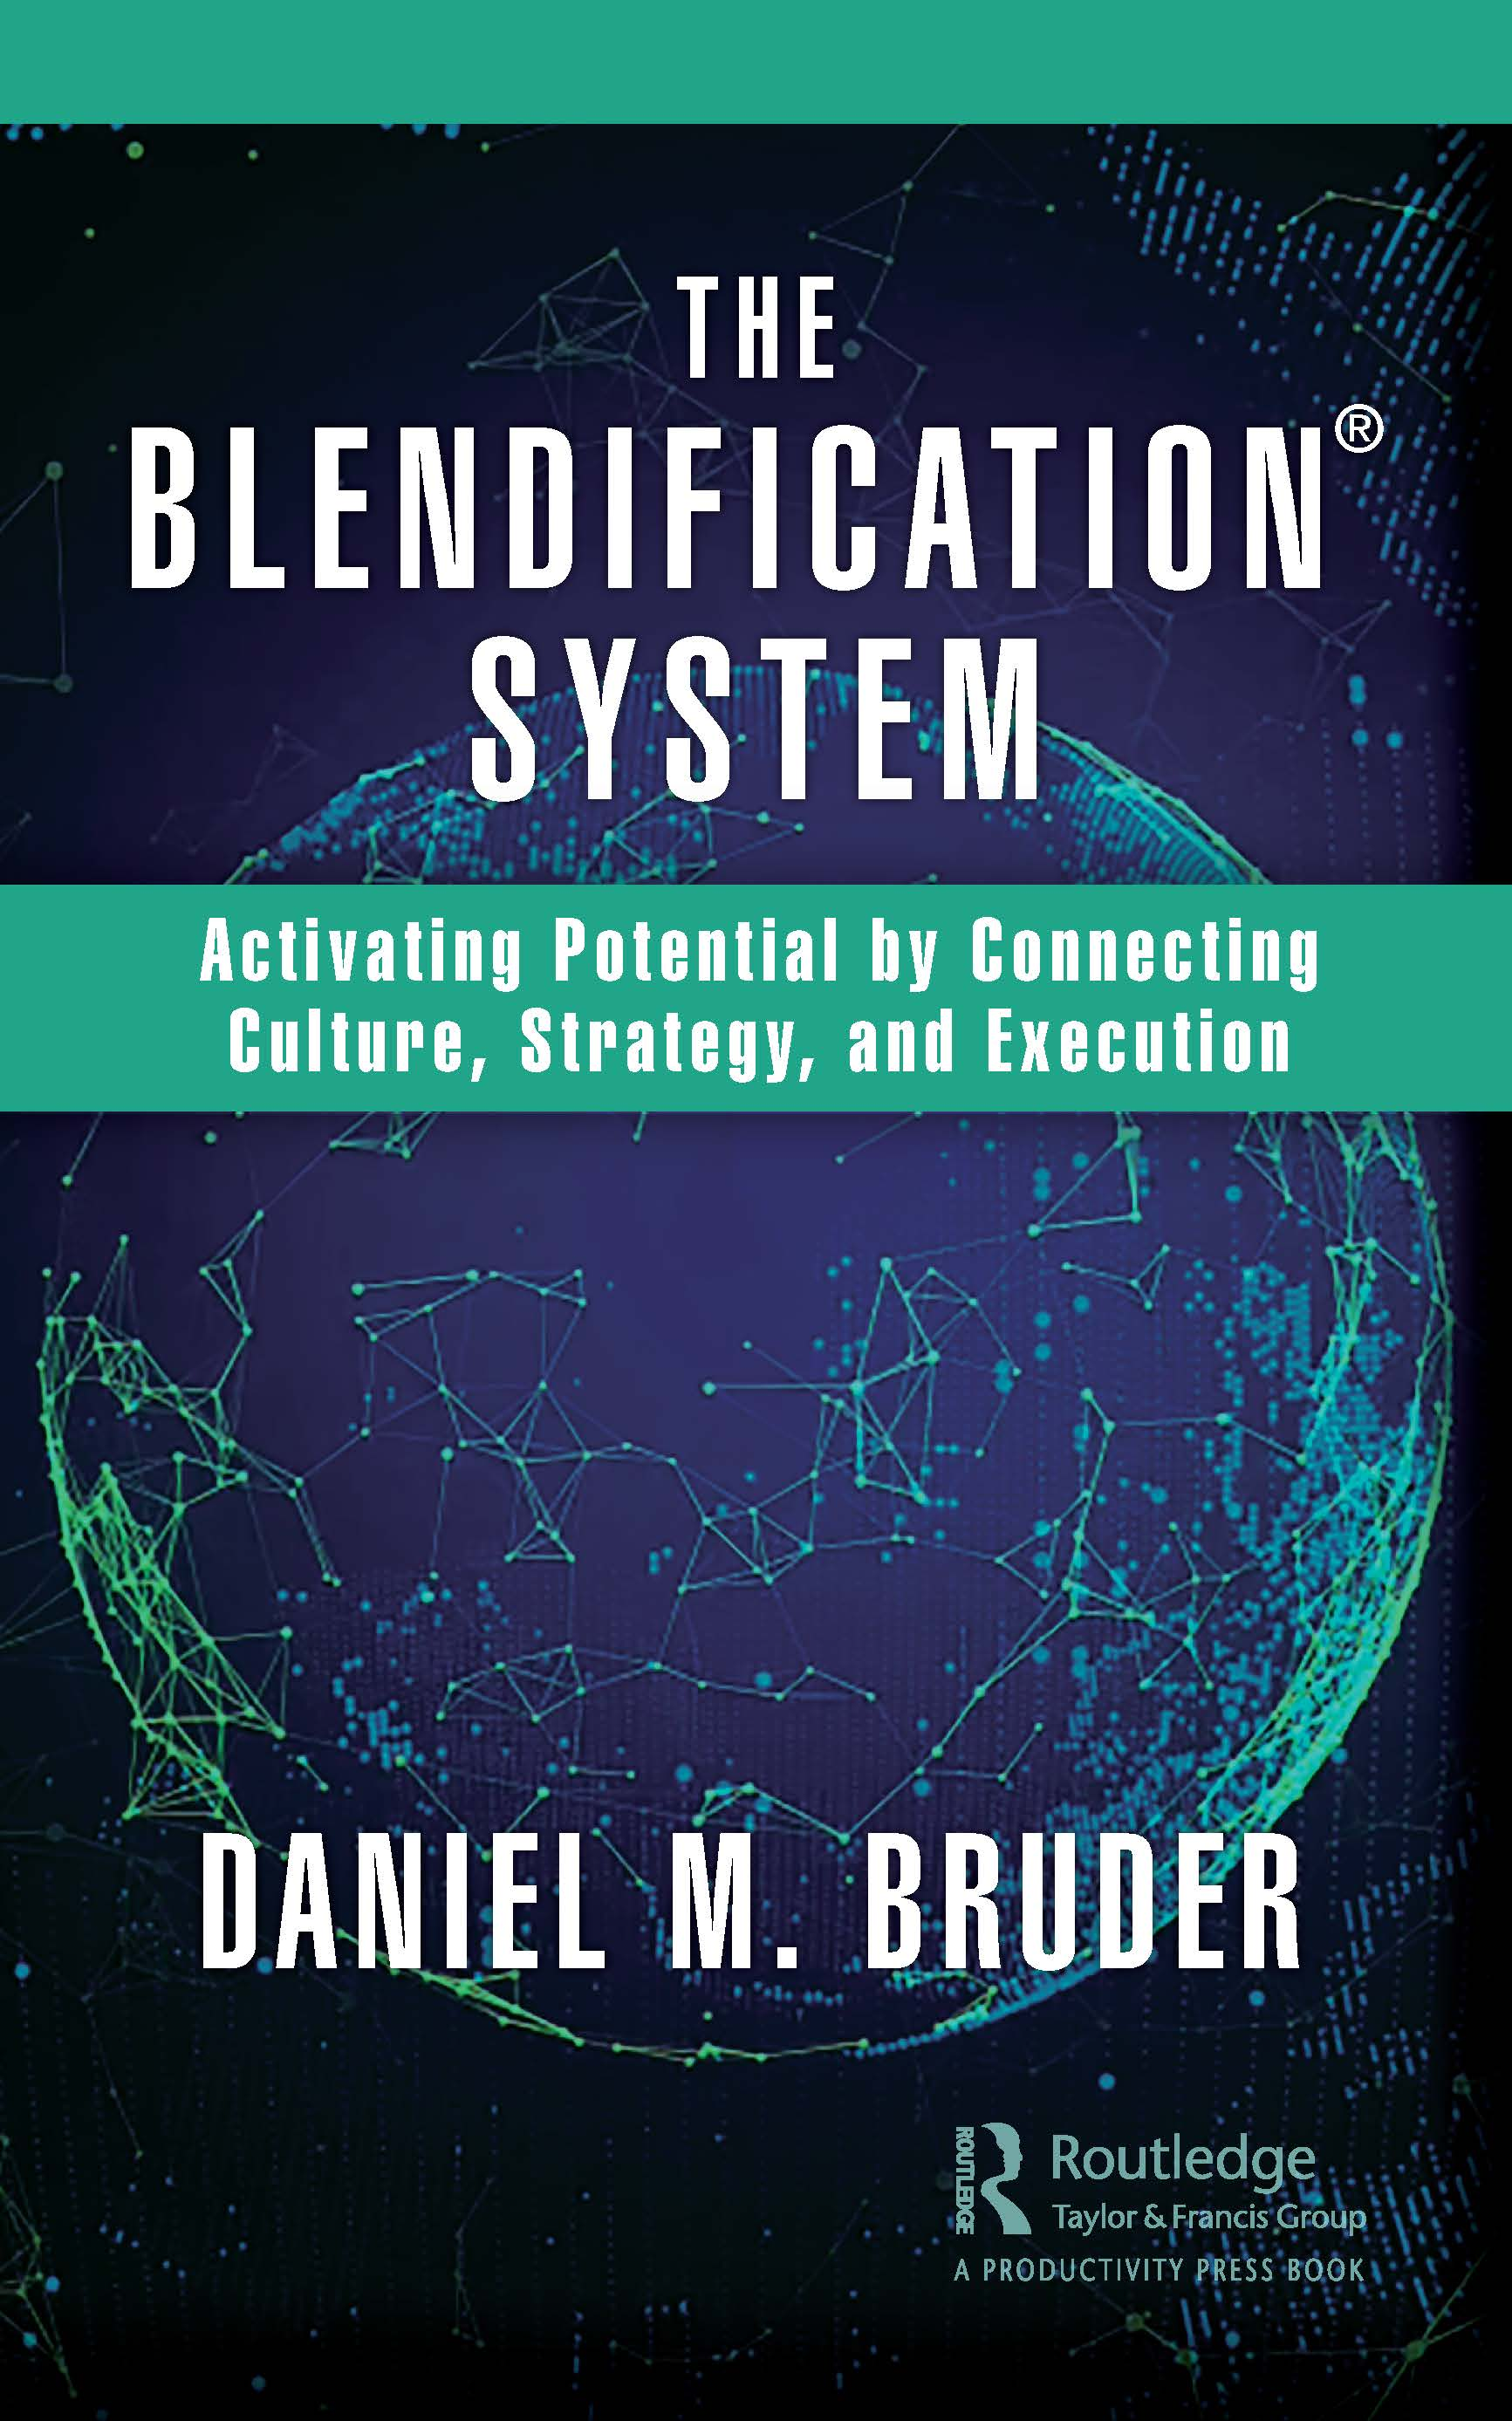 The Blendification System: Activating Potential by Connecting Culture, Strategy, and Execution book cover